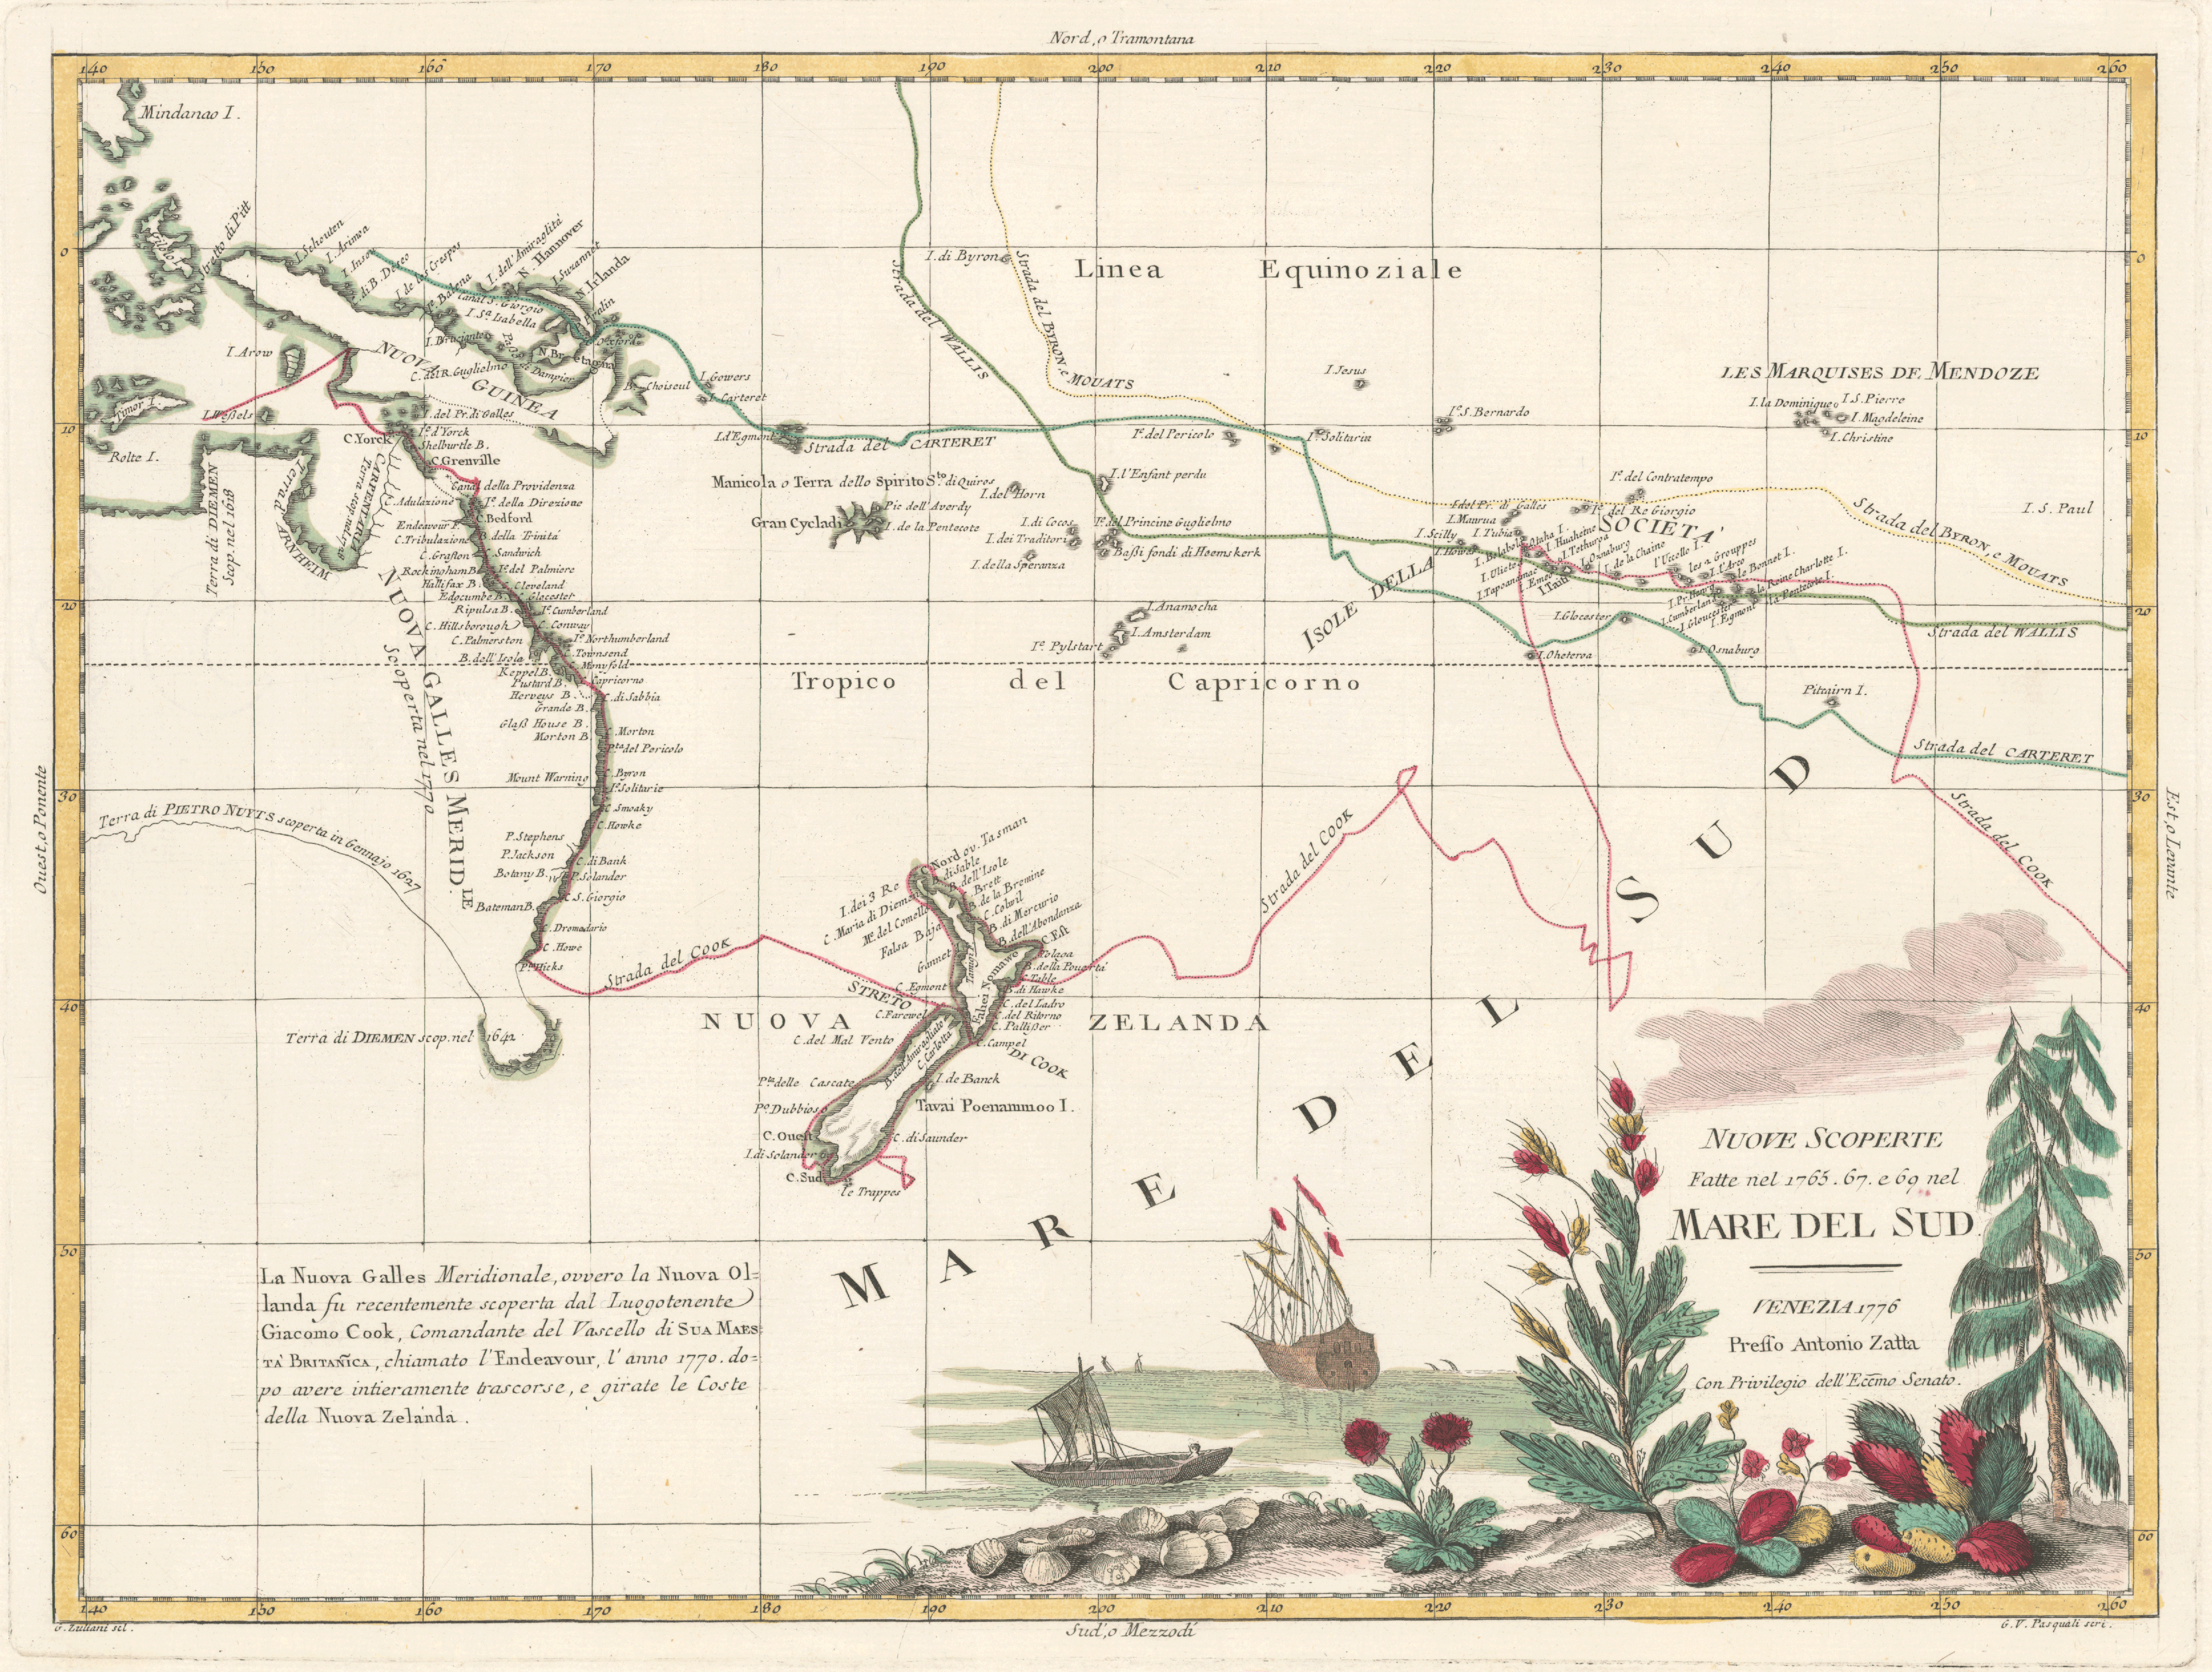 """First decorative map (1776) to show Cook's tracks in the Pacific, recording the discoveries he made in Australia, New Zealand, New Guinea, and the South Pacific during the Endeavour voyage. Also noted are the tracks of Philip Carteret, John Byron, and Samuel Wallis. The chartings of the east coast of Australia and New Zealand's two islands are shown in detail, drawn from Cook's own map of the region, """"Chart of Part of the South Seas"""" (1773). The ship depicted is most probably the Endeavour."""